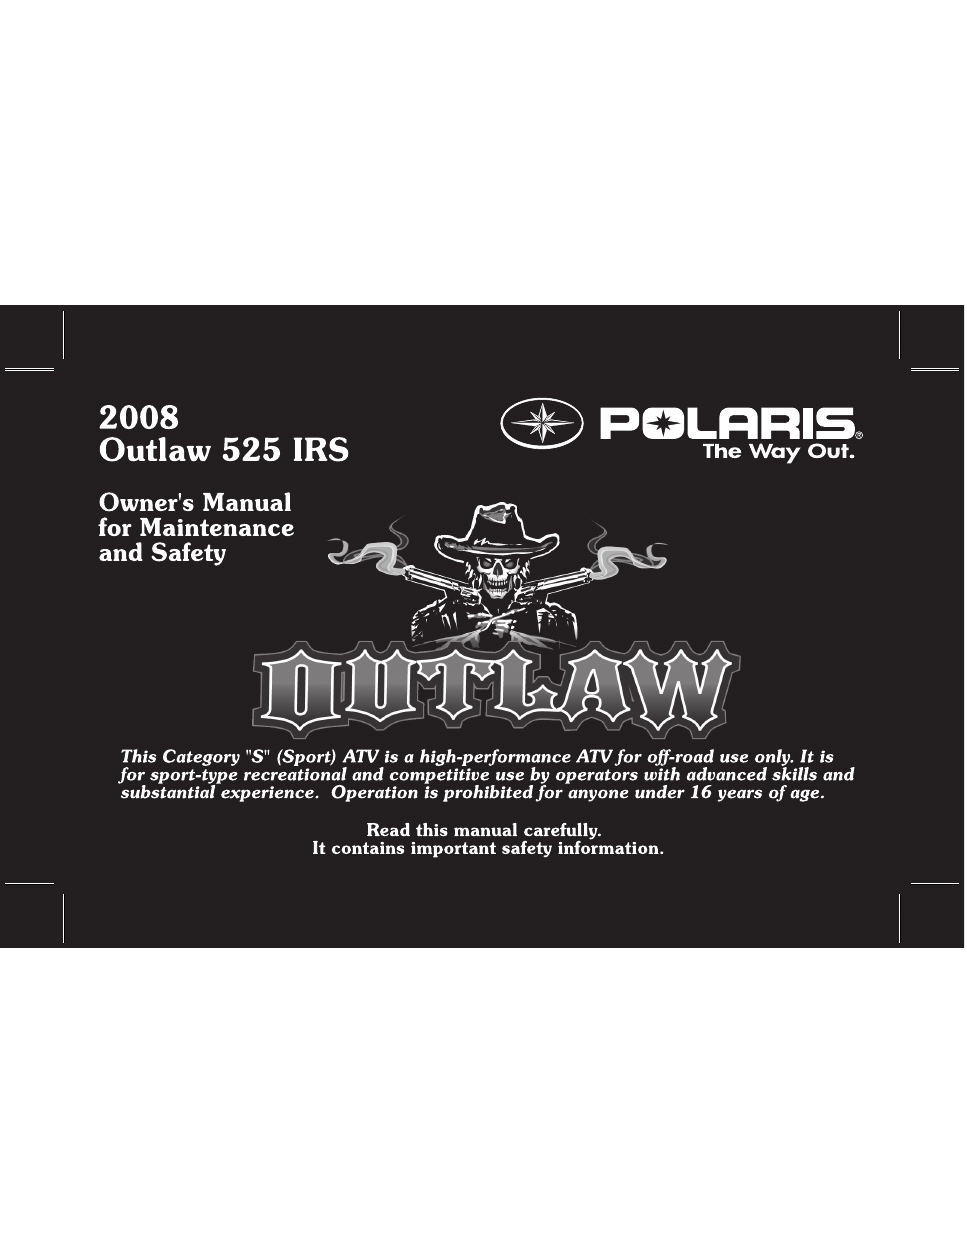 polaris outlaw 525 irs owner s manual free pdf download 220 pages rh manualagent com polaris service manuals free polaris service manual pdf free